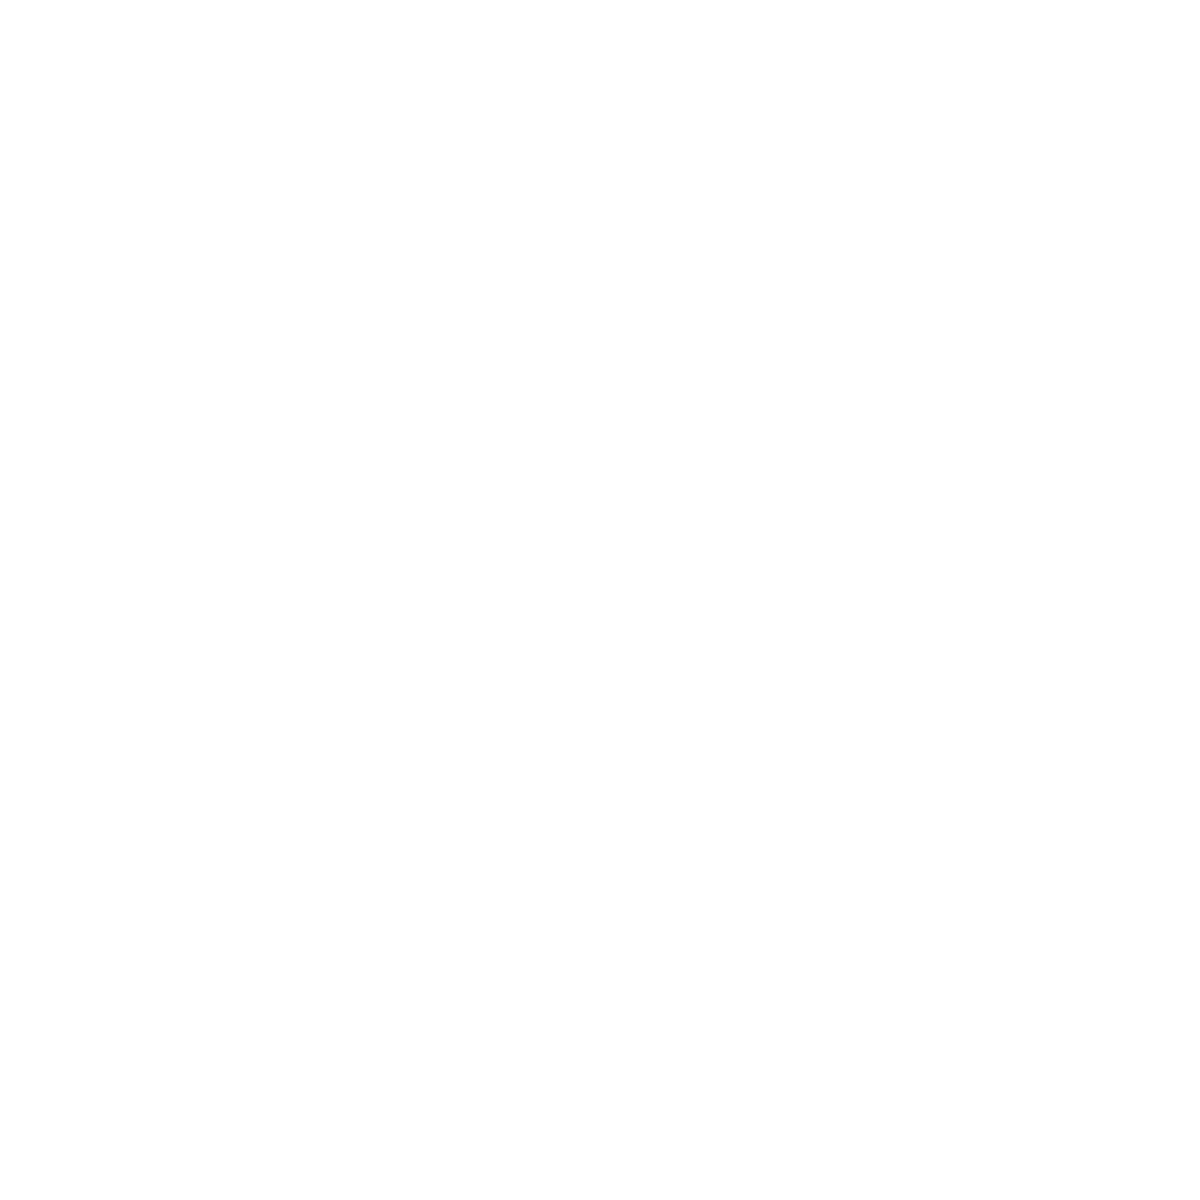 freelance writing for Connecticut College